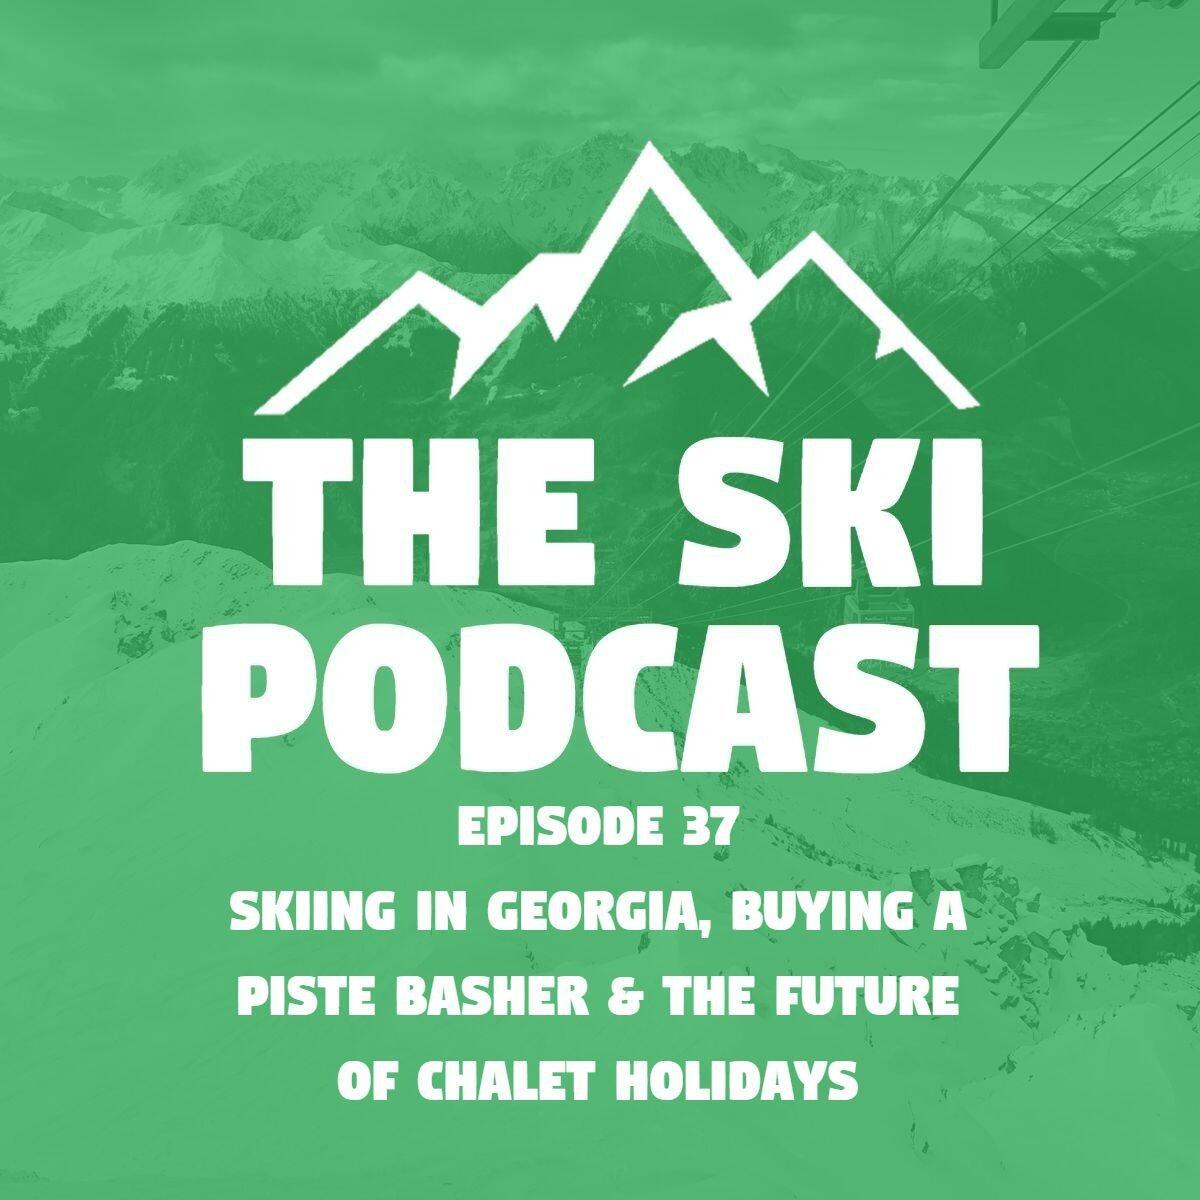 37: Skiing in Georgia, Buying a Piste Basher & the Future of Chalet Holidays